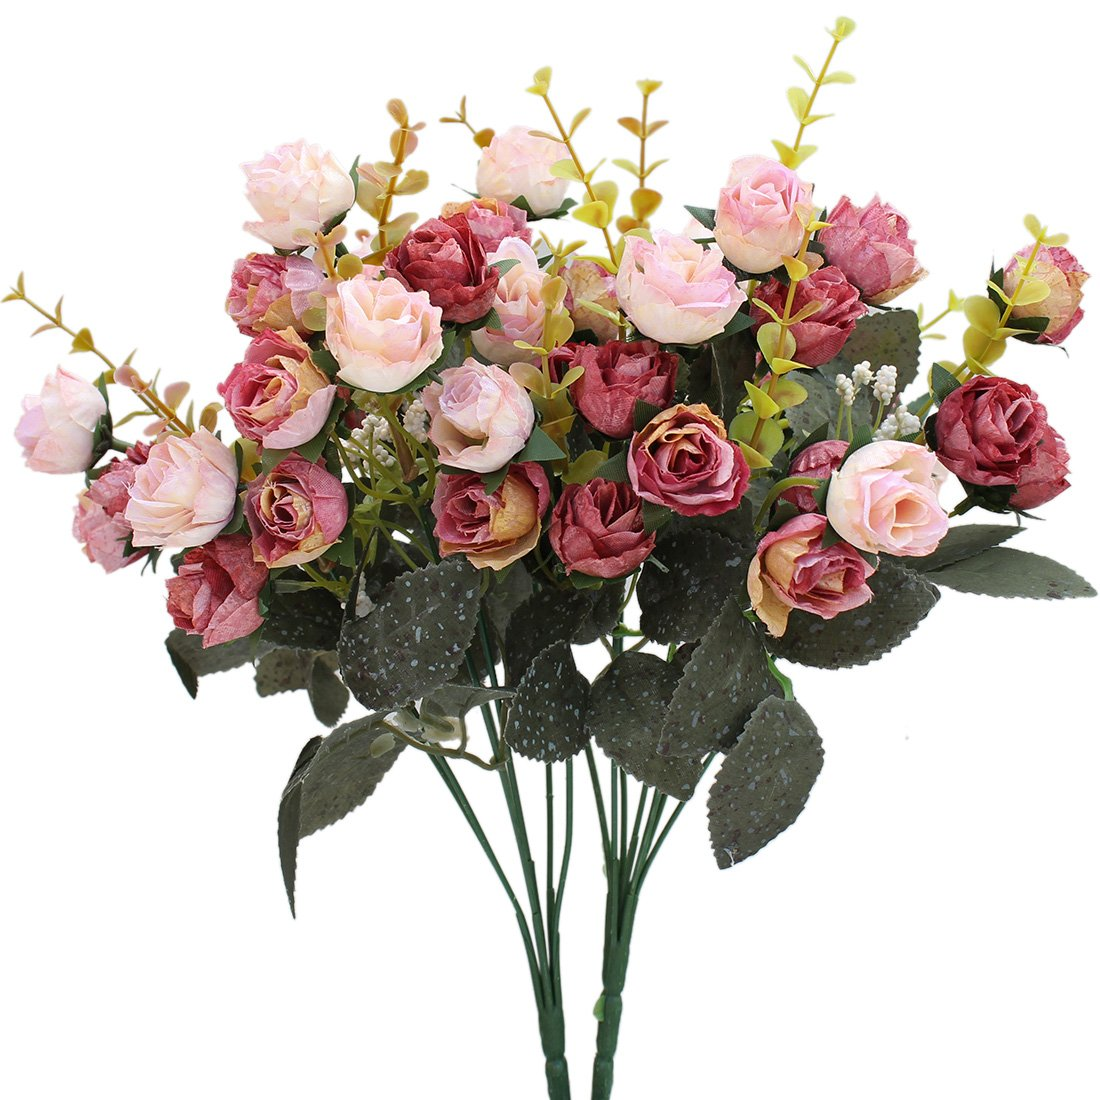 Shop amazon artificial flowers luyue 7 branch 21 heads artificial silk fake flowers leaf rose wedding floral decor bouquet izmirmasajfo